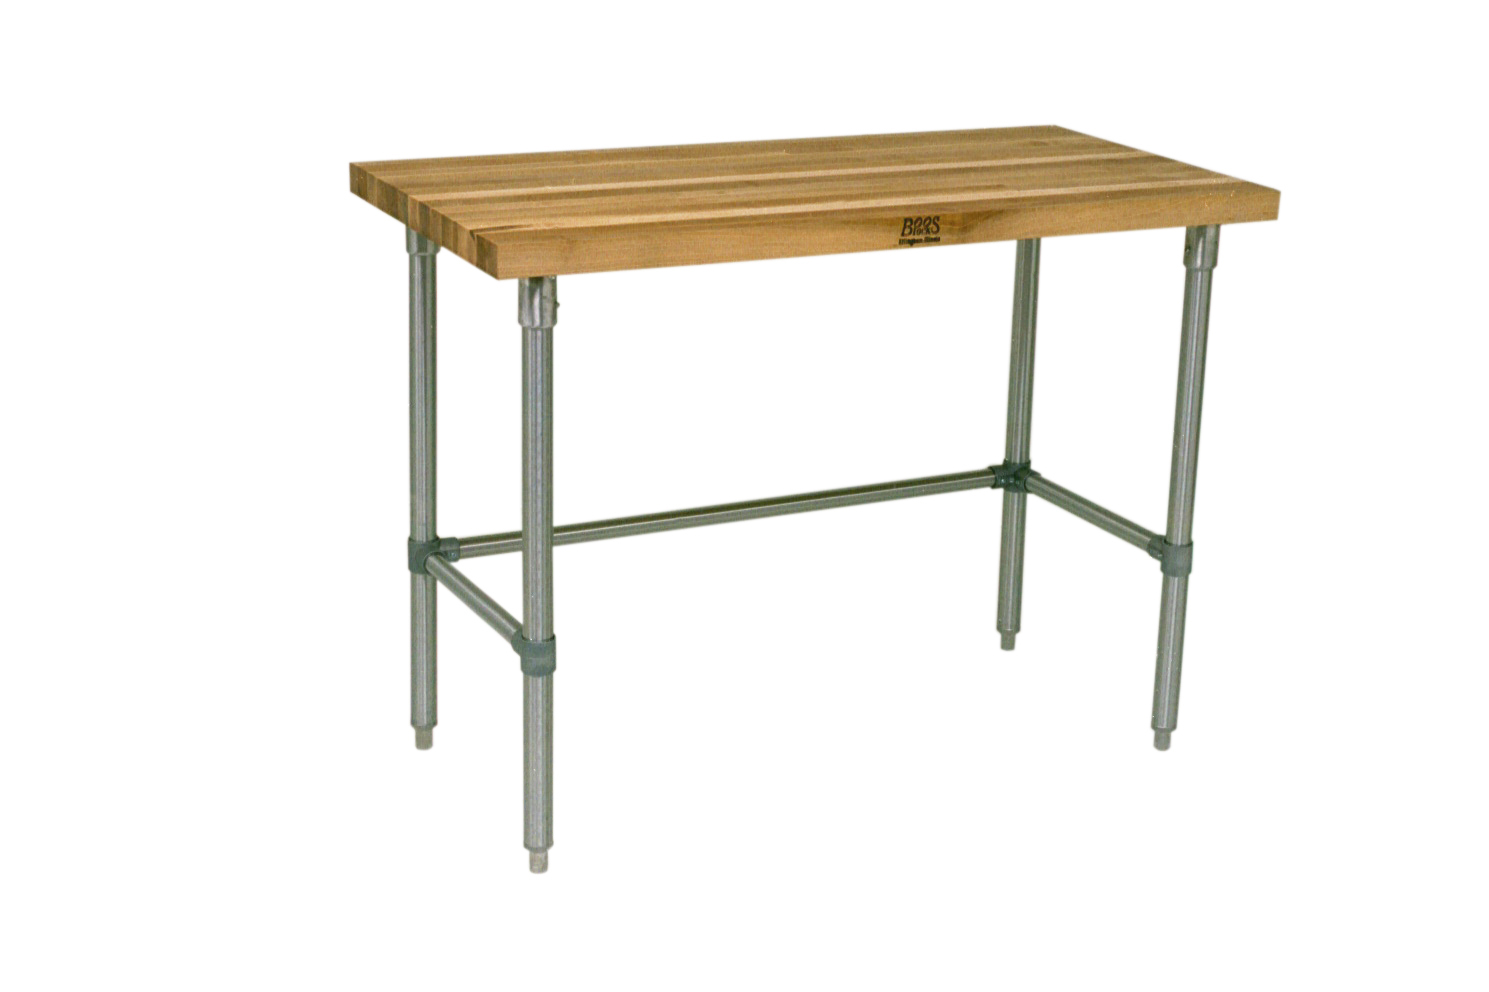 John Boos Thick Maple Top Work Table on Adjustable Galvanized Base, 48 x 30 Inch